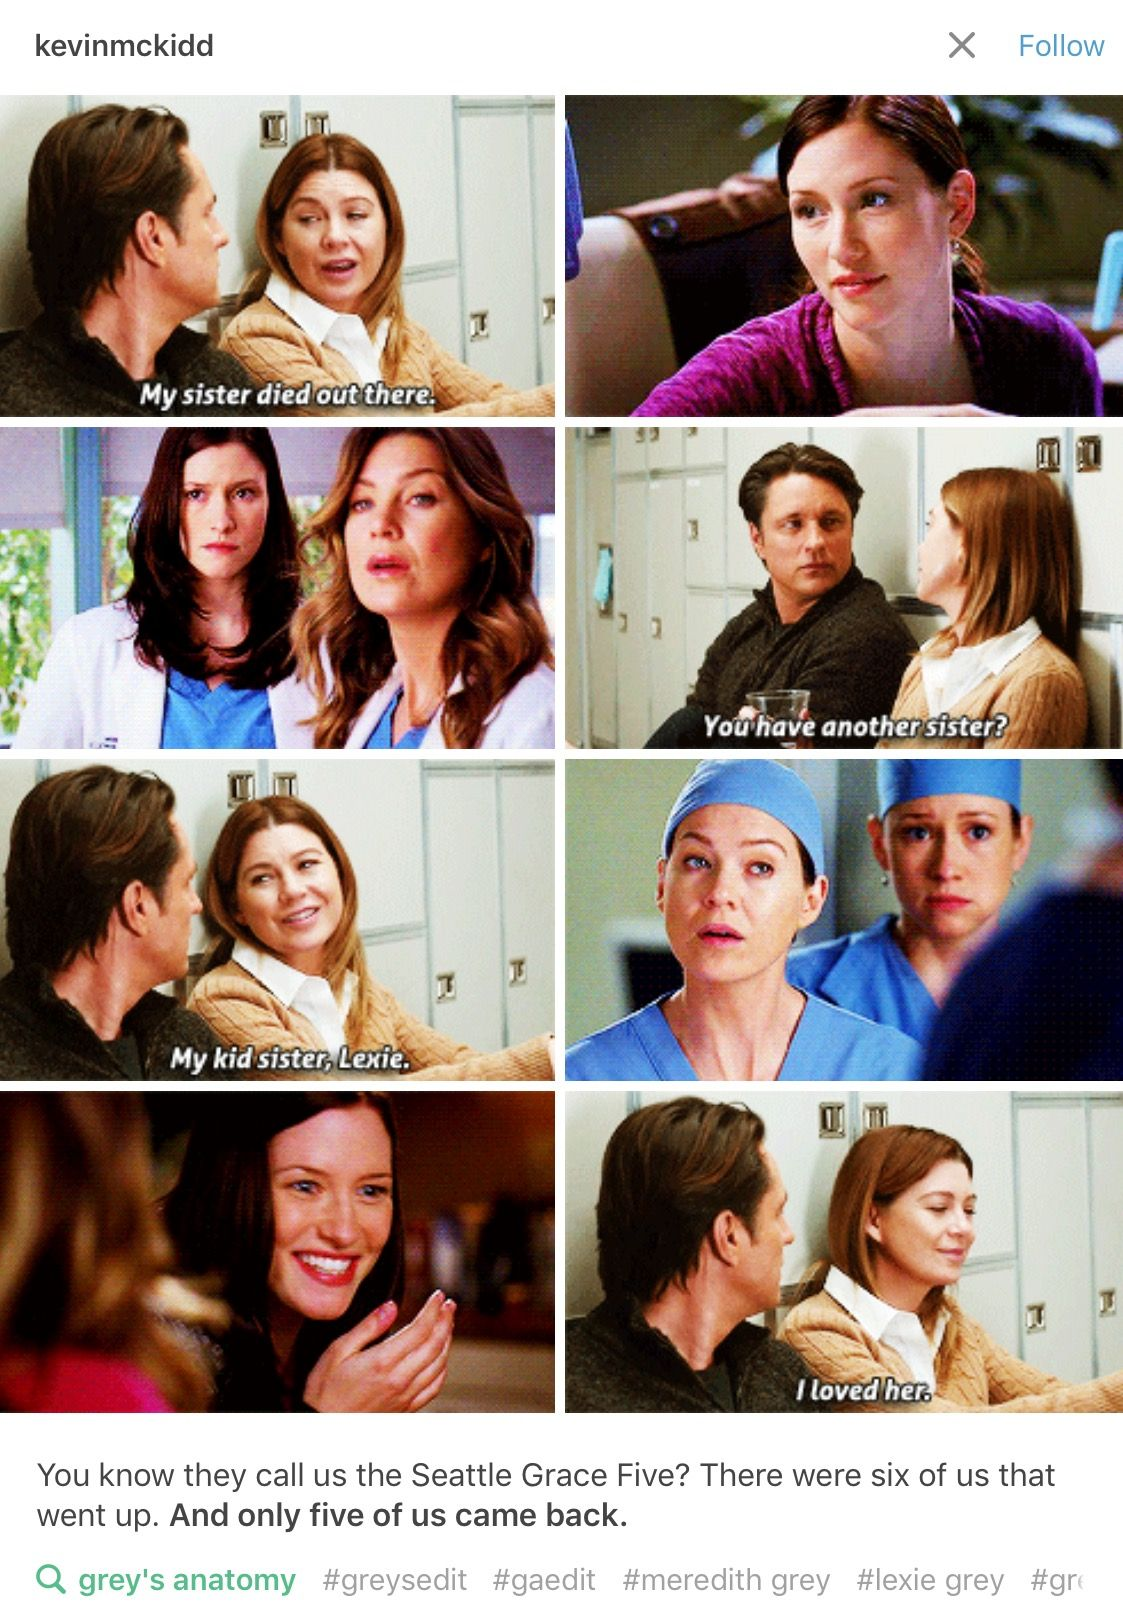 Greys Anatomy | Greys Anatomy | Pinterest | Grays anatomy, Anatomy ...